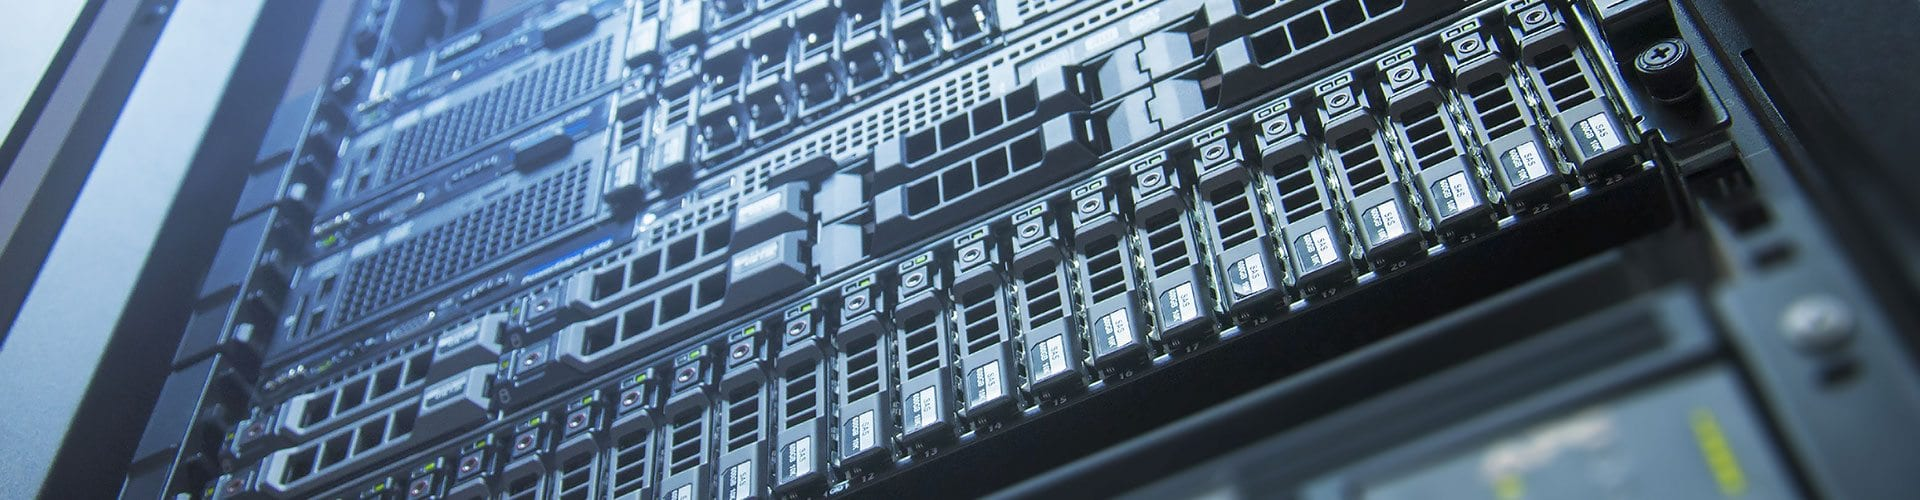 Hardware as a Service | HaaS | Loyal IT Technology Solutions